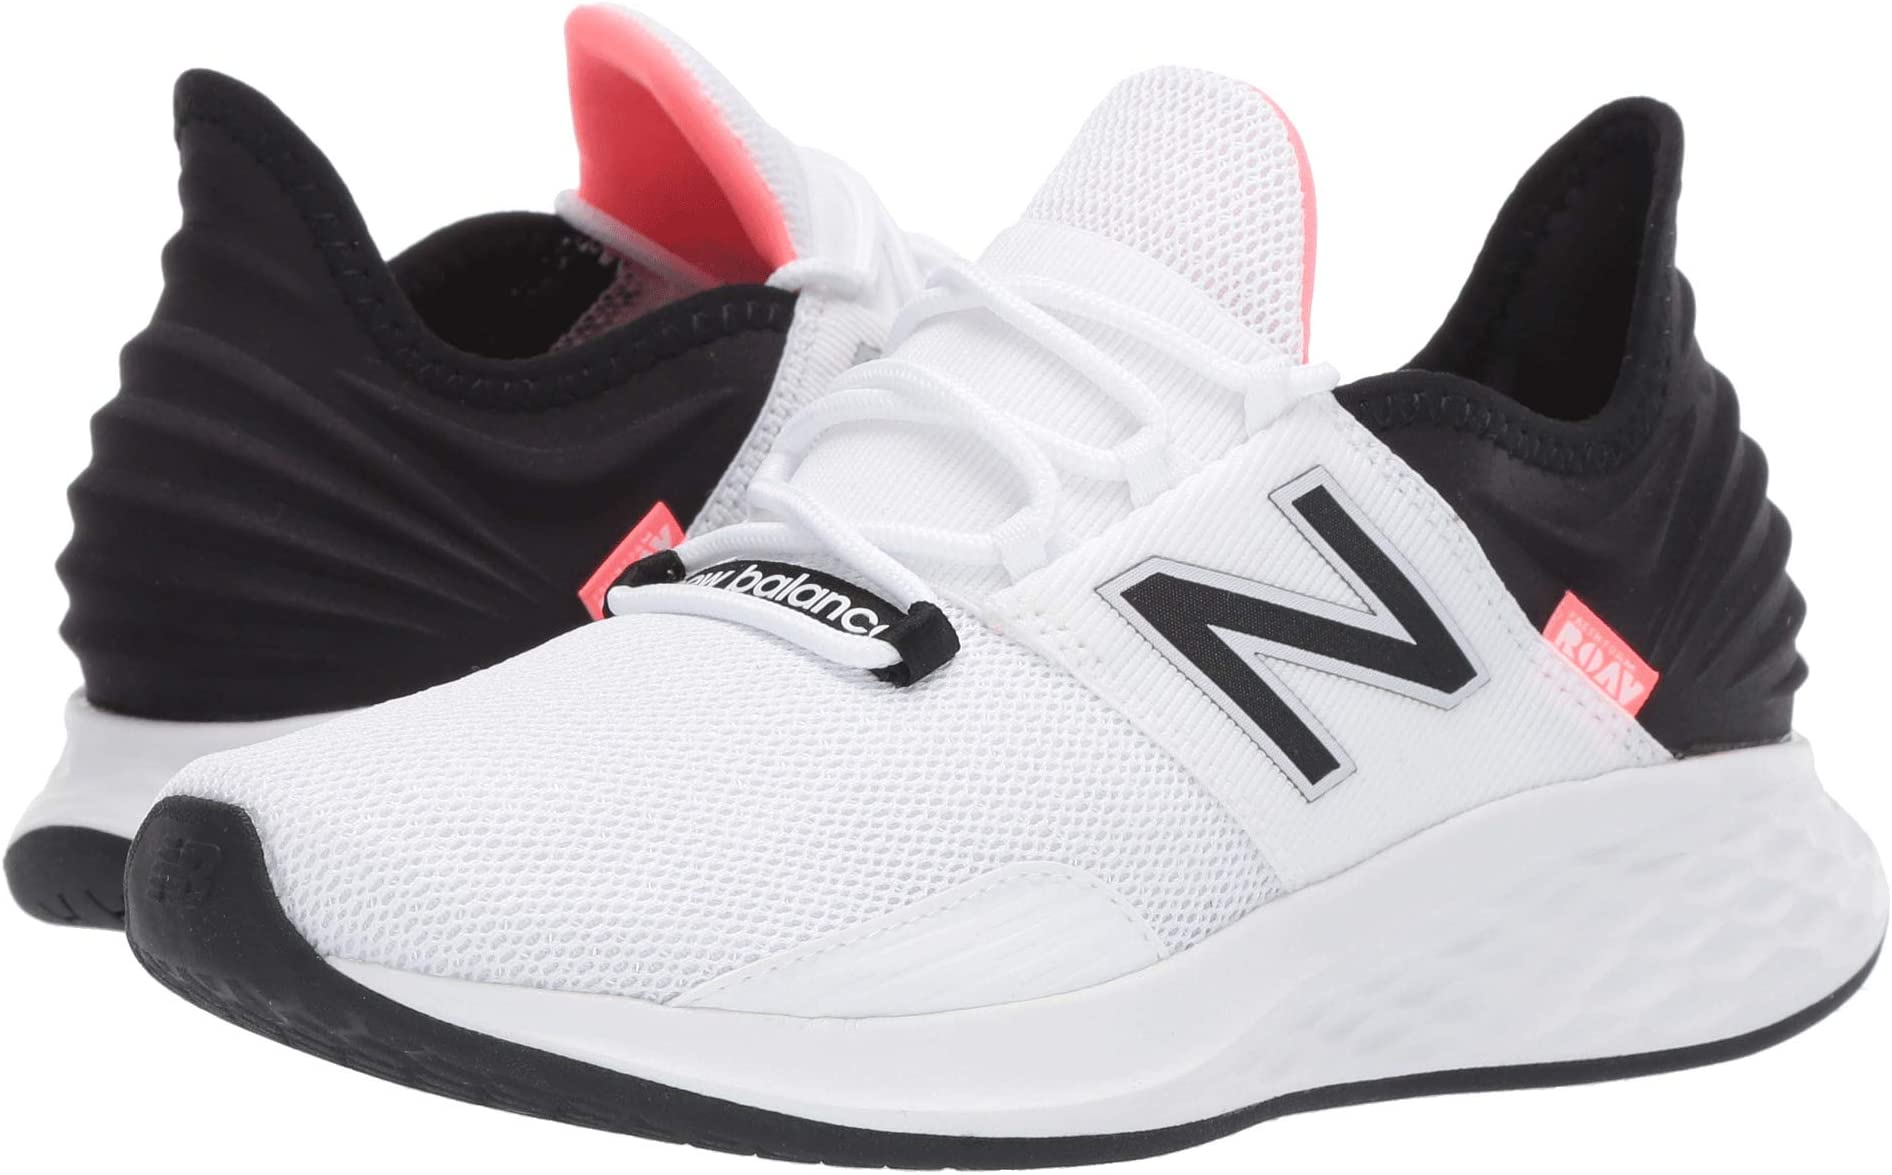 2c4cf1cca2 New Balance Shoes, Clothing, Activewear, Socks | Zappos.com